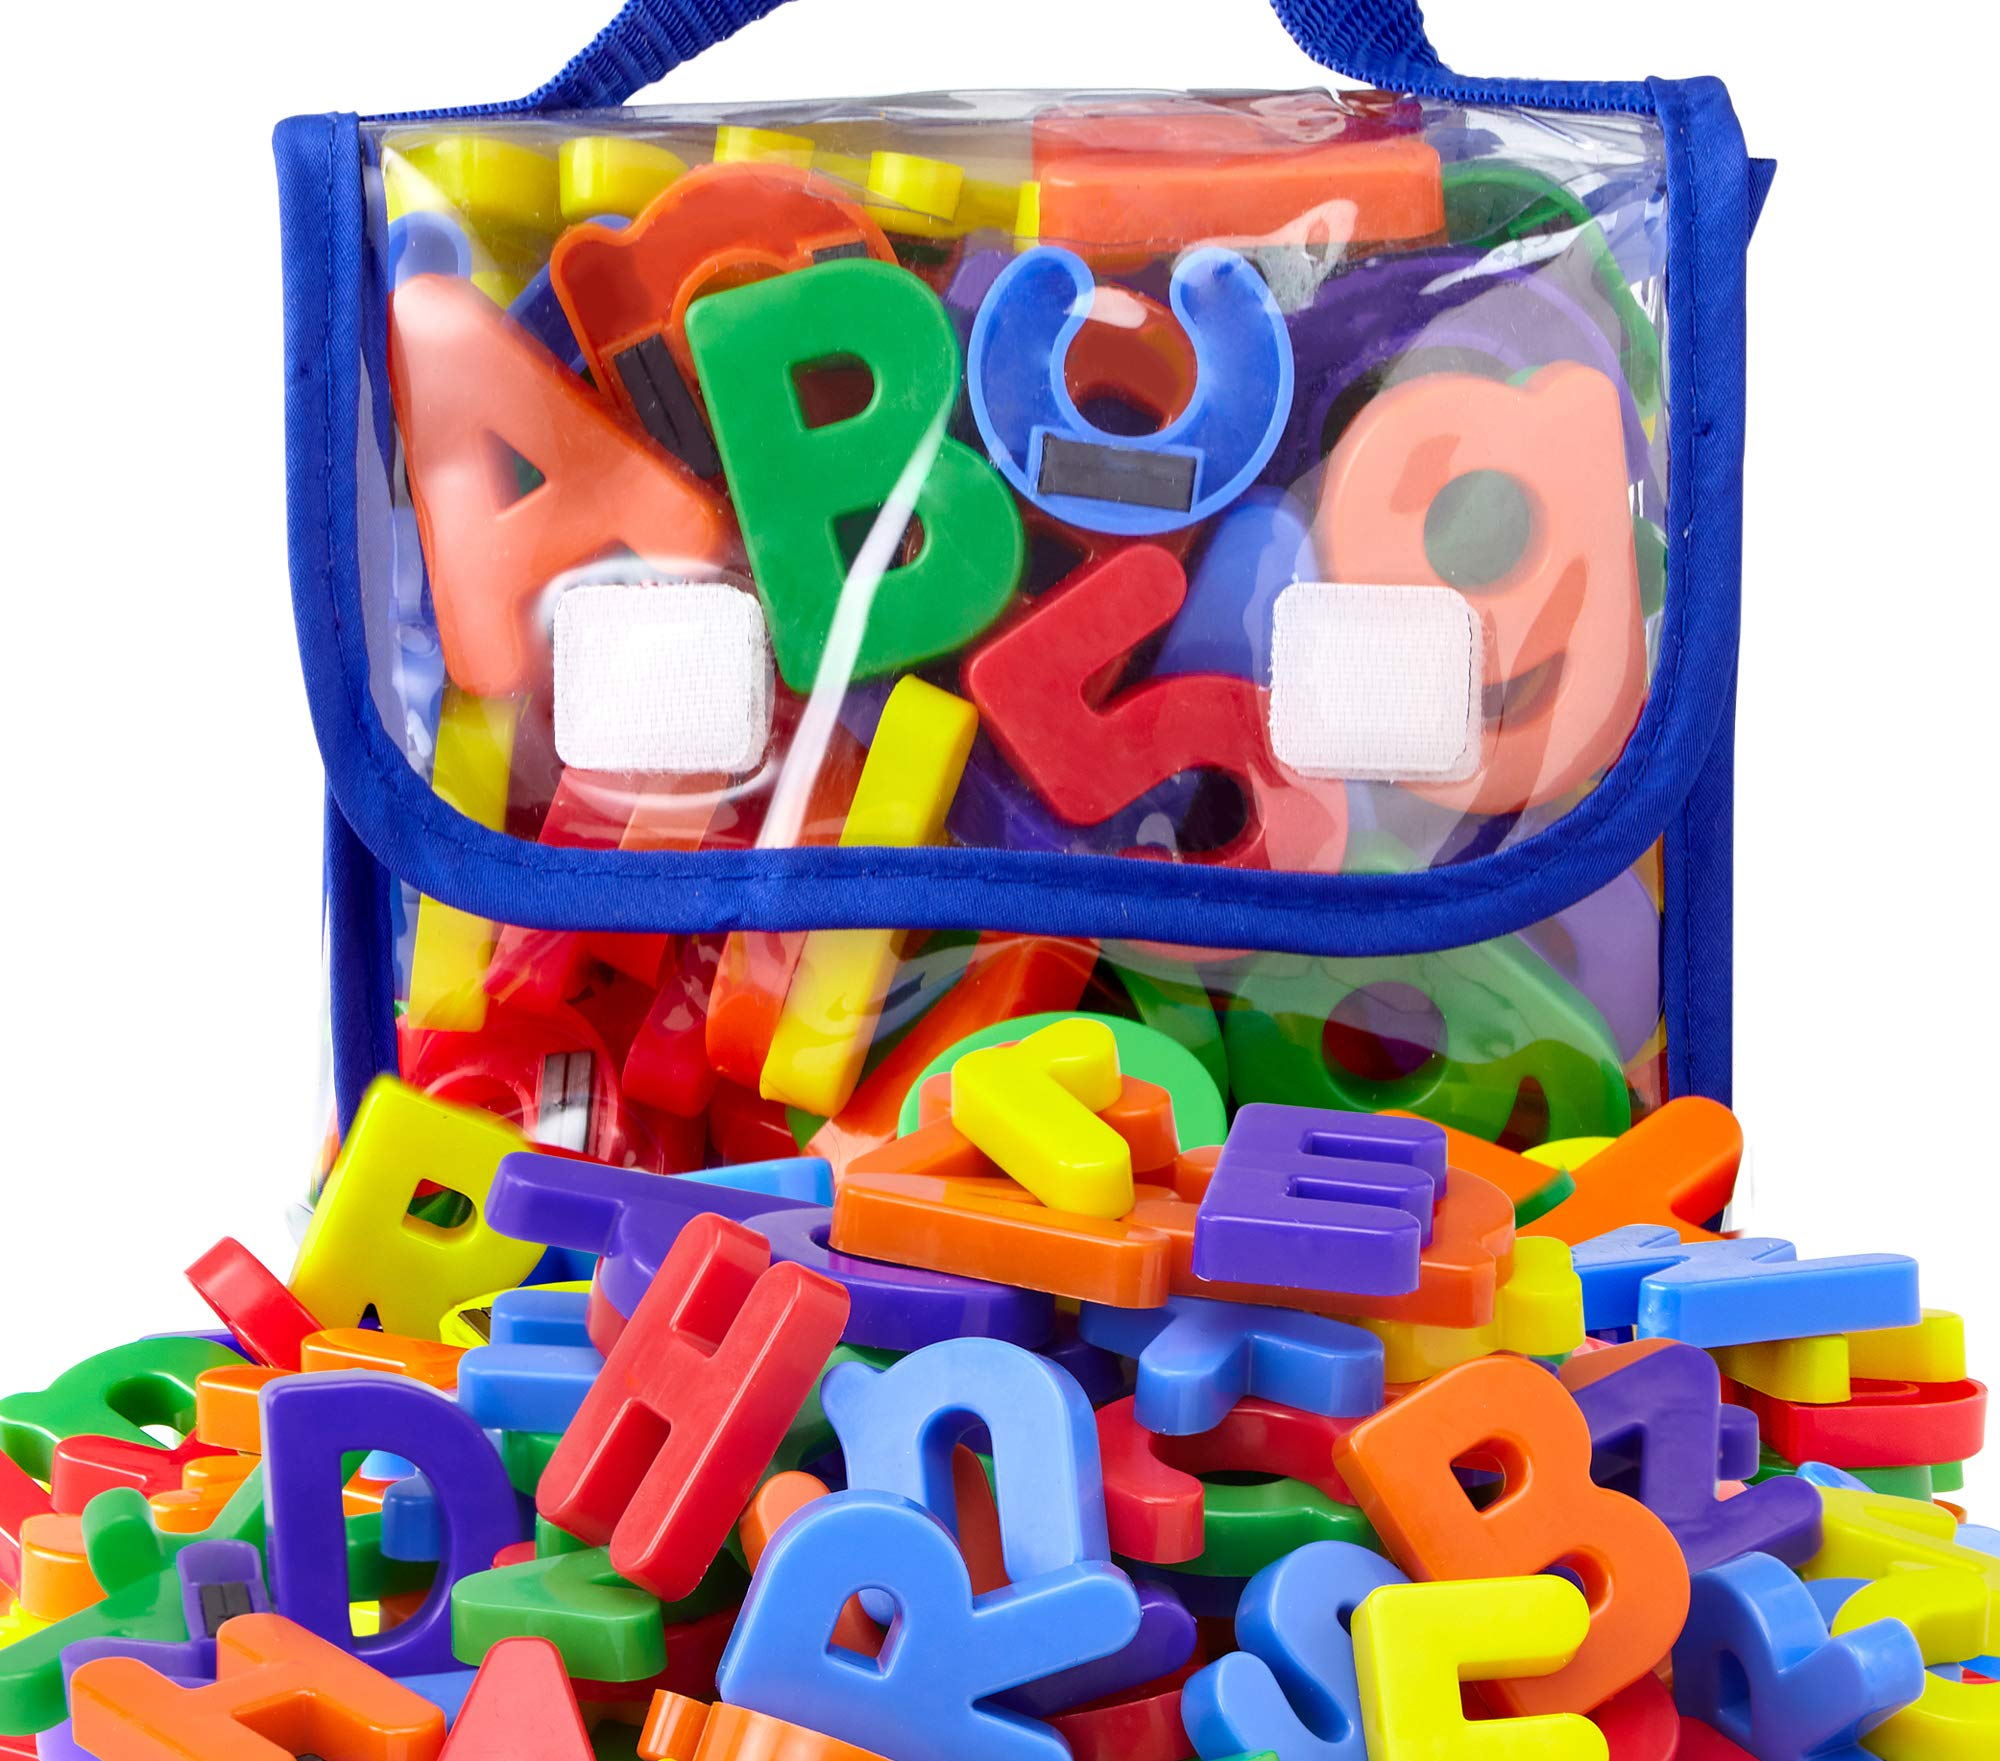 EduKid Toys 72 Magnetic Letters & Numbers (Tote) 1.25'' - 1.75'' by EduKid Toys